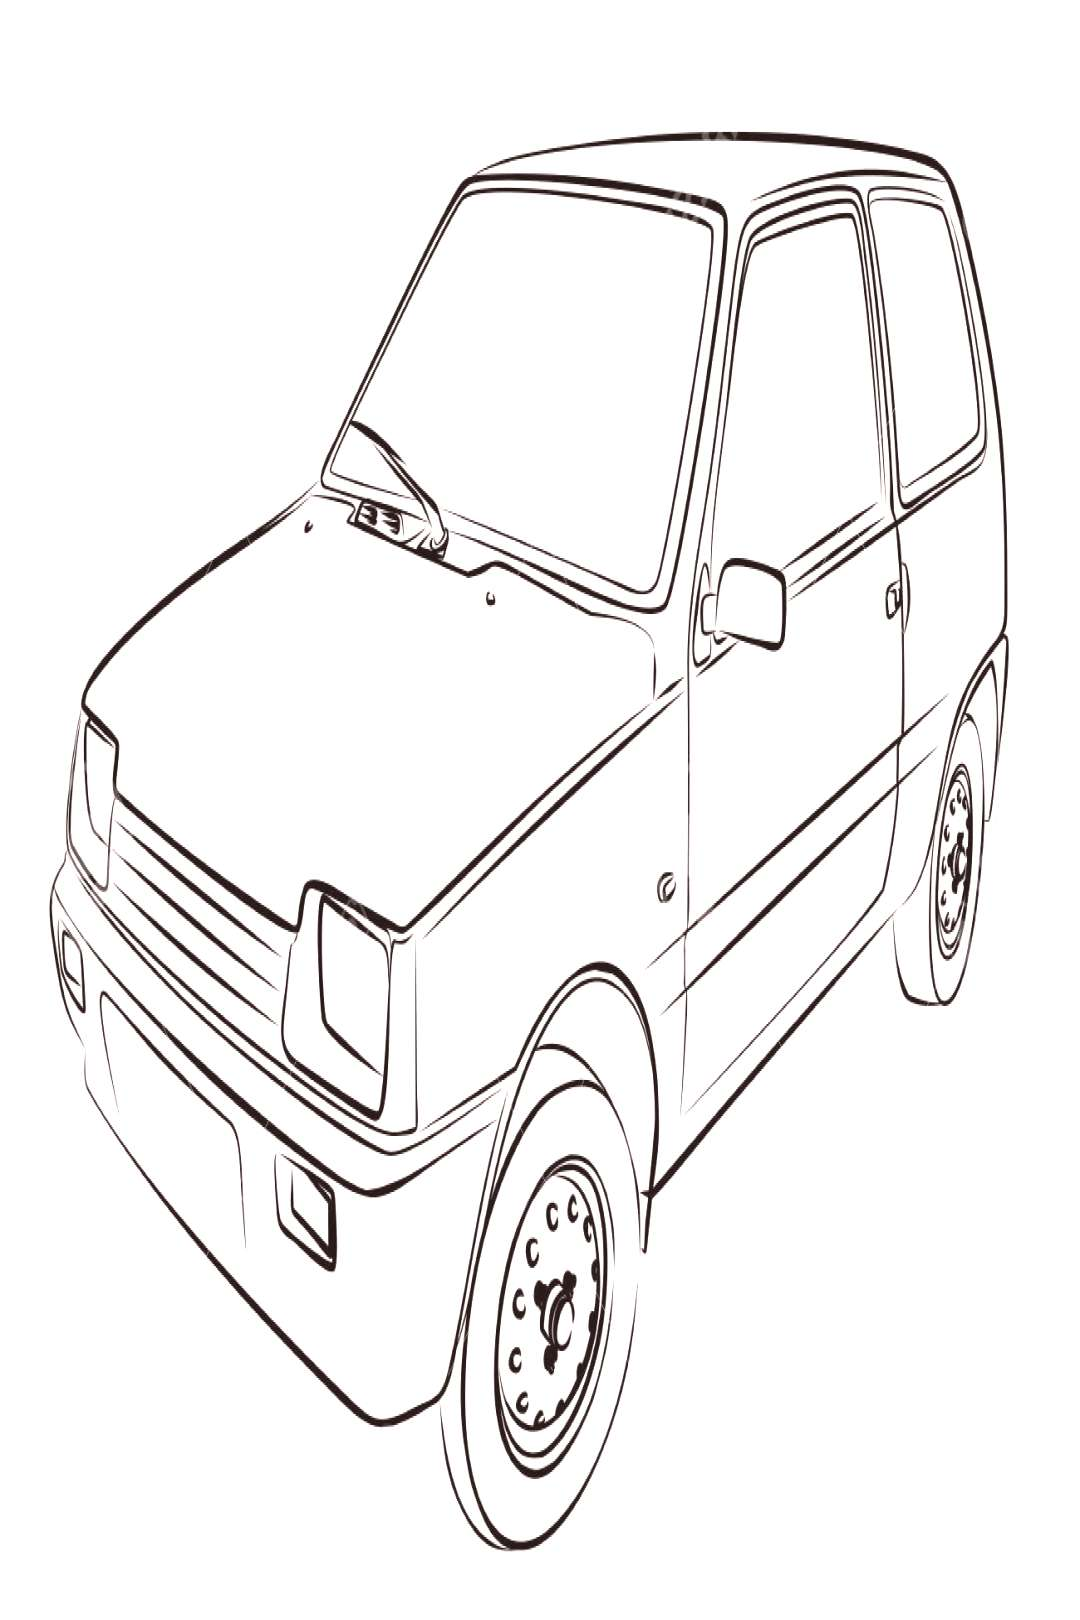 The Sketch of an old retro car. ,